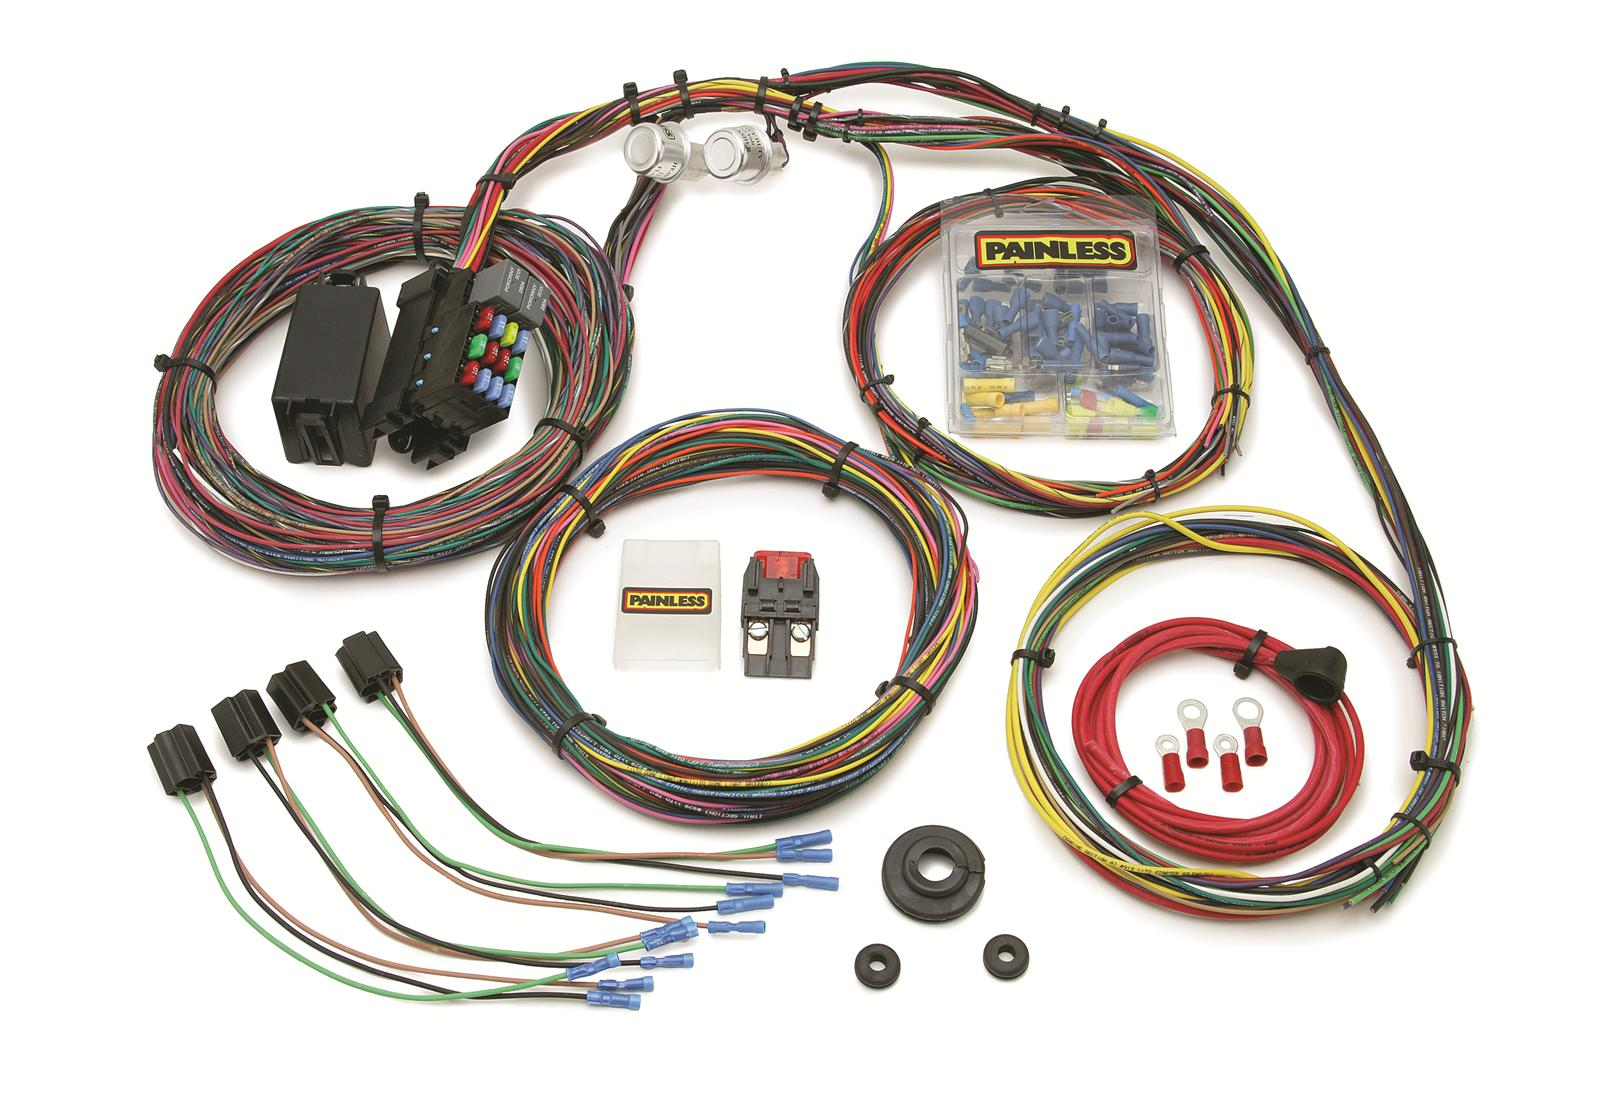 hight resolution of painless performance 21 circuit mopar color coded universal wiring universal wiring harness wire